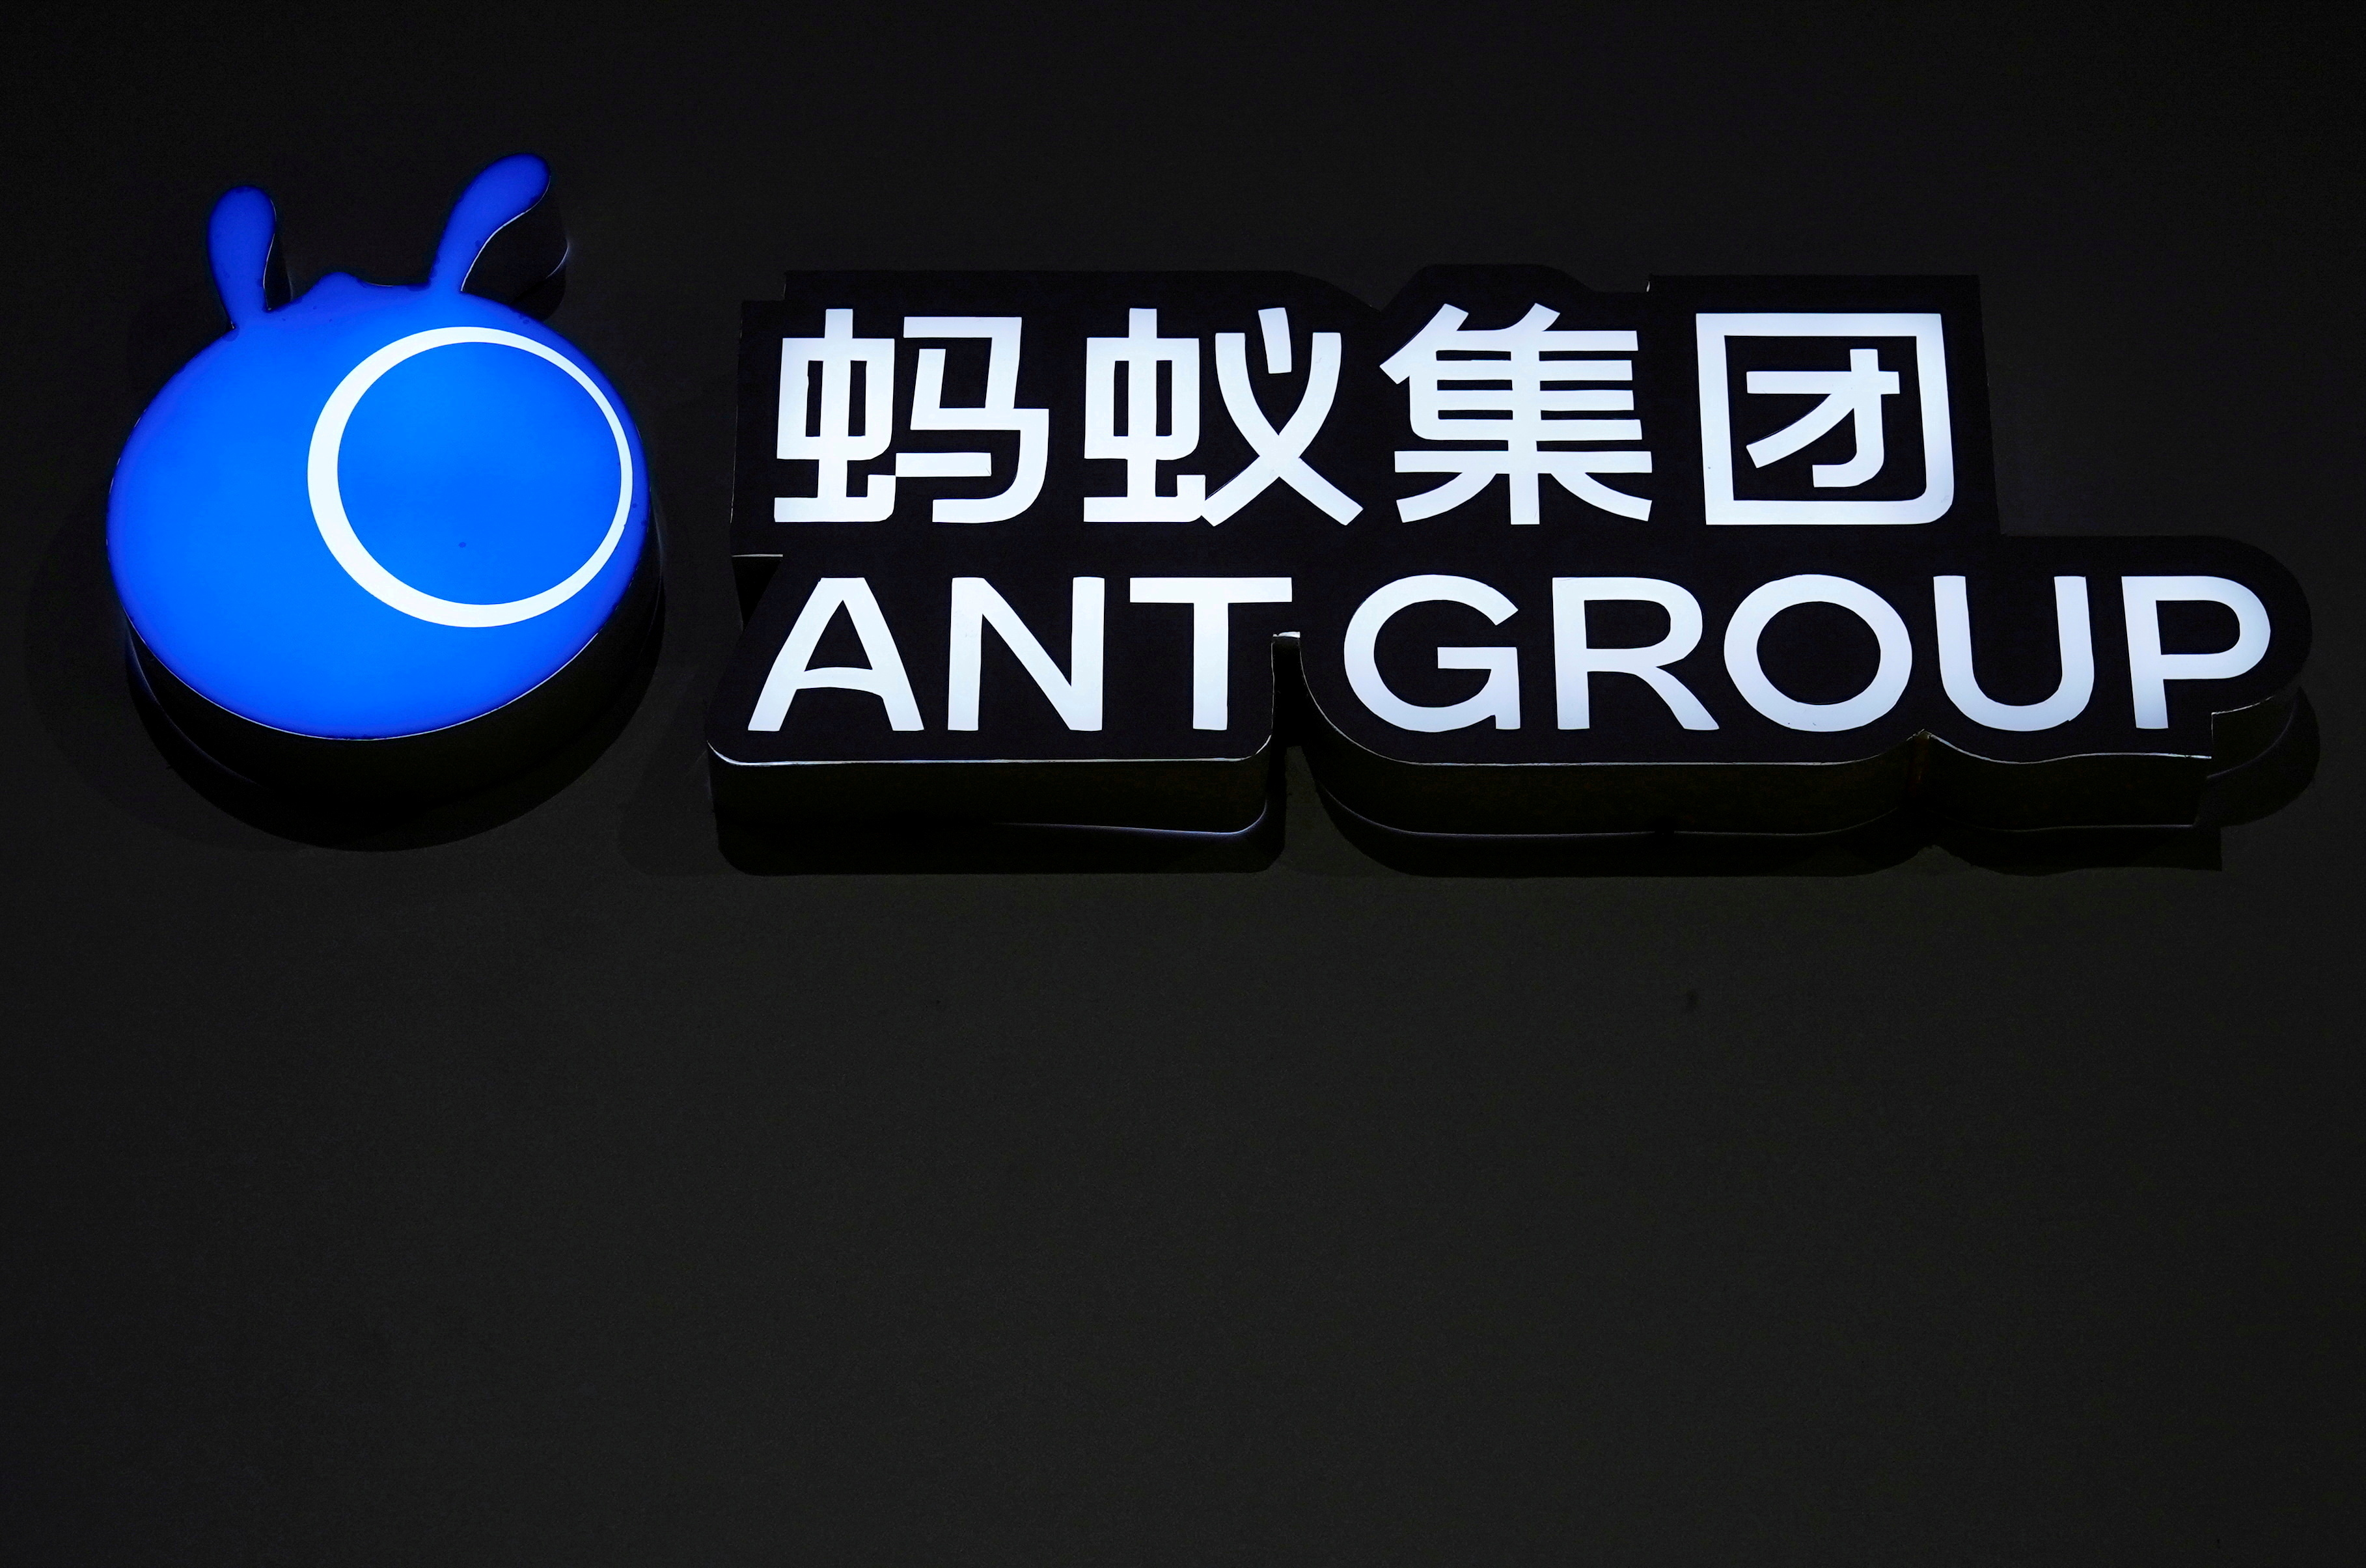 A sign of Ant Group is seen during the World Internet Conference in Wuzhen, Zhejiang province, China, Nov. 23, 2020. REUTERS/Aly Song